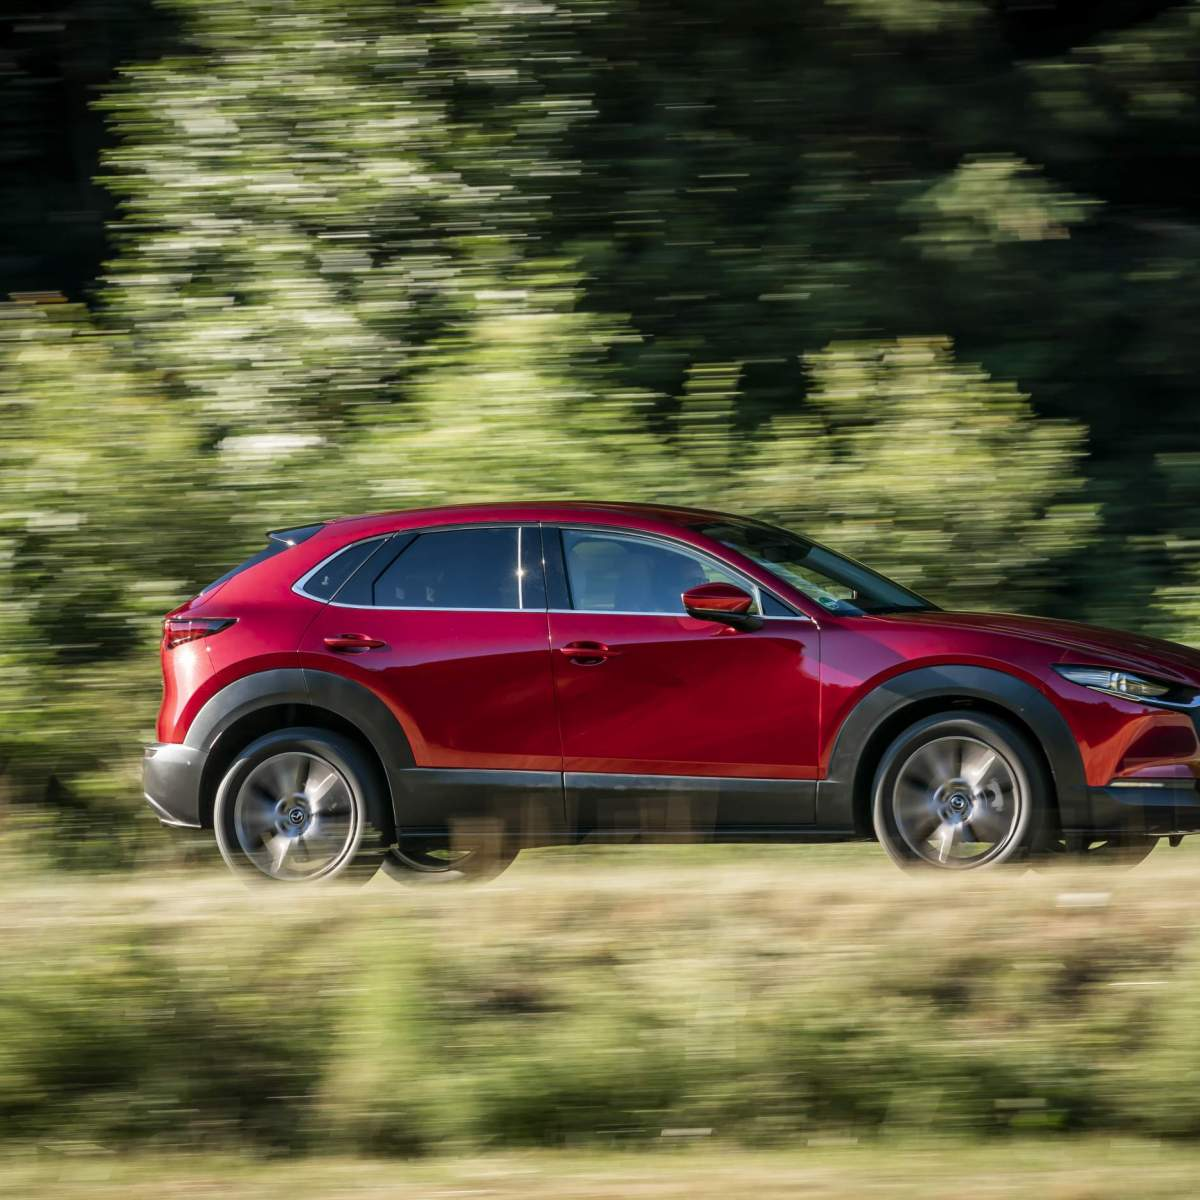 Mazda-CX-30_Action_Soul-Red-Crystal_17